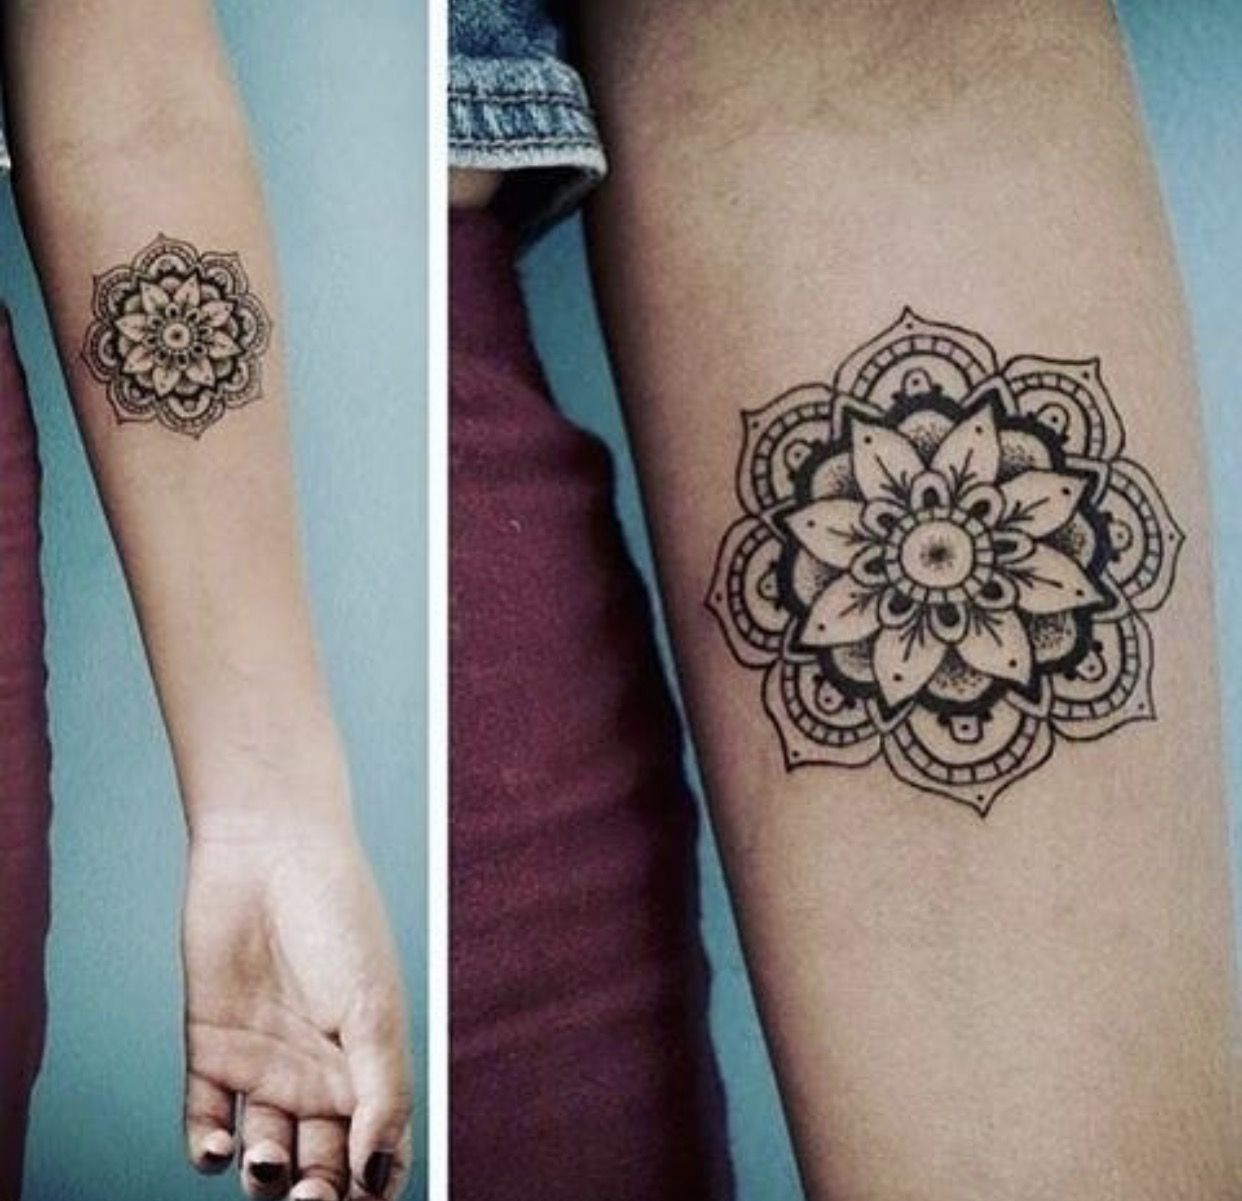 Pin By Maleah Clark On Tattoos In 2018 Pinterest Tatouage